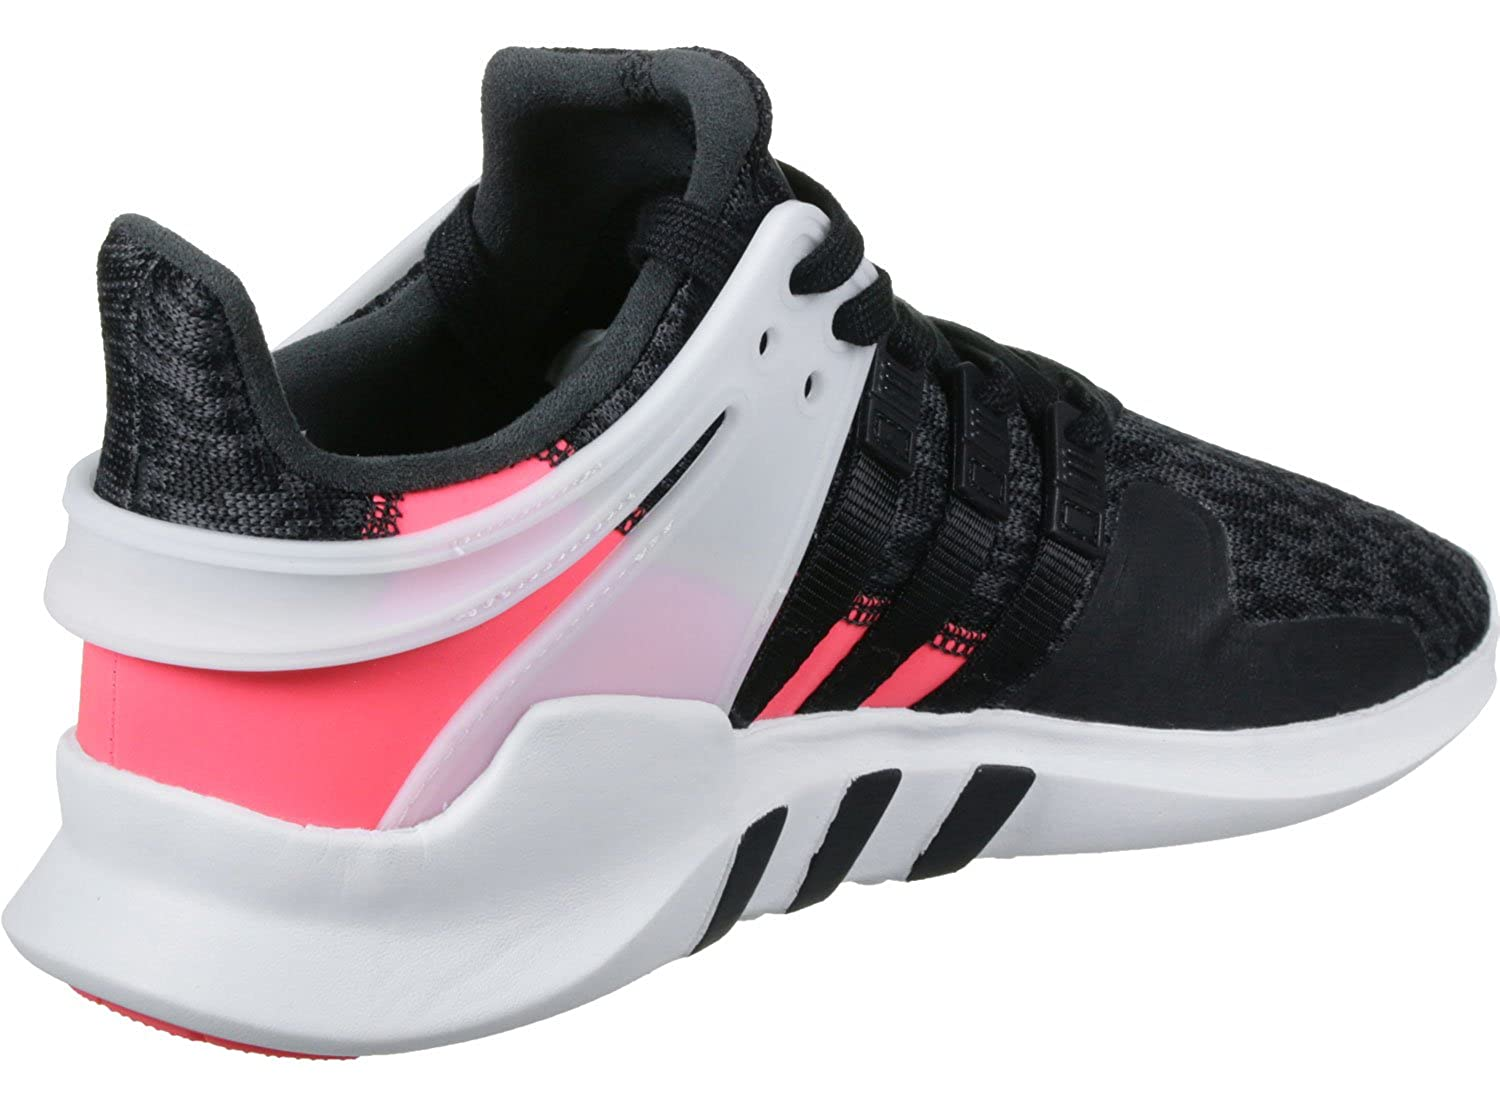 Adidas EquipHommes t Support Adv, Adv, Adv, Sneaker Basses Homme d6deec